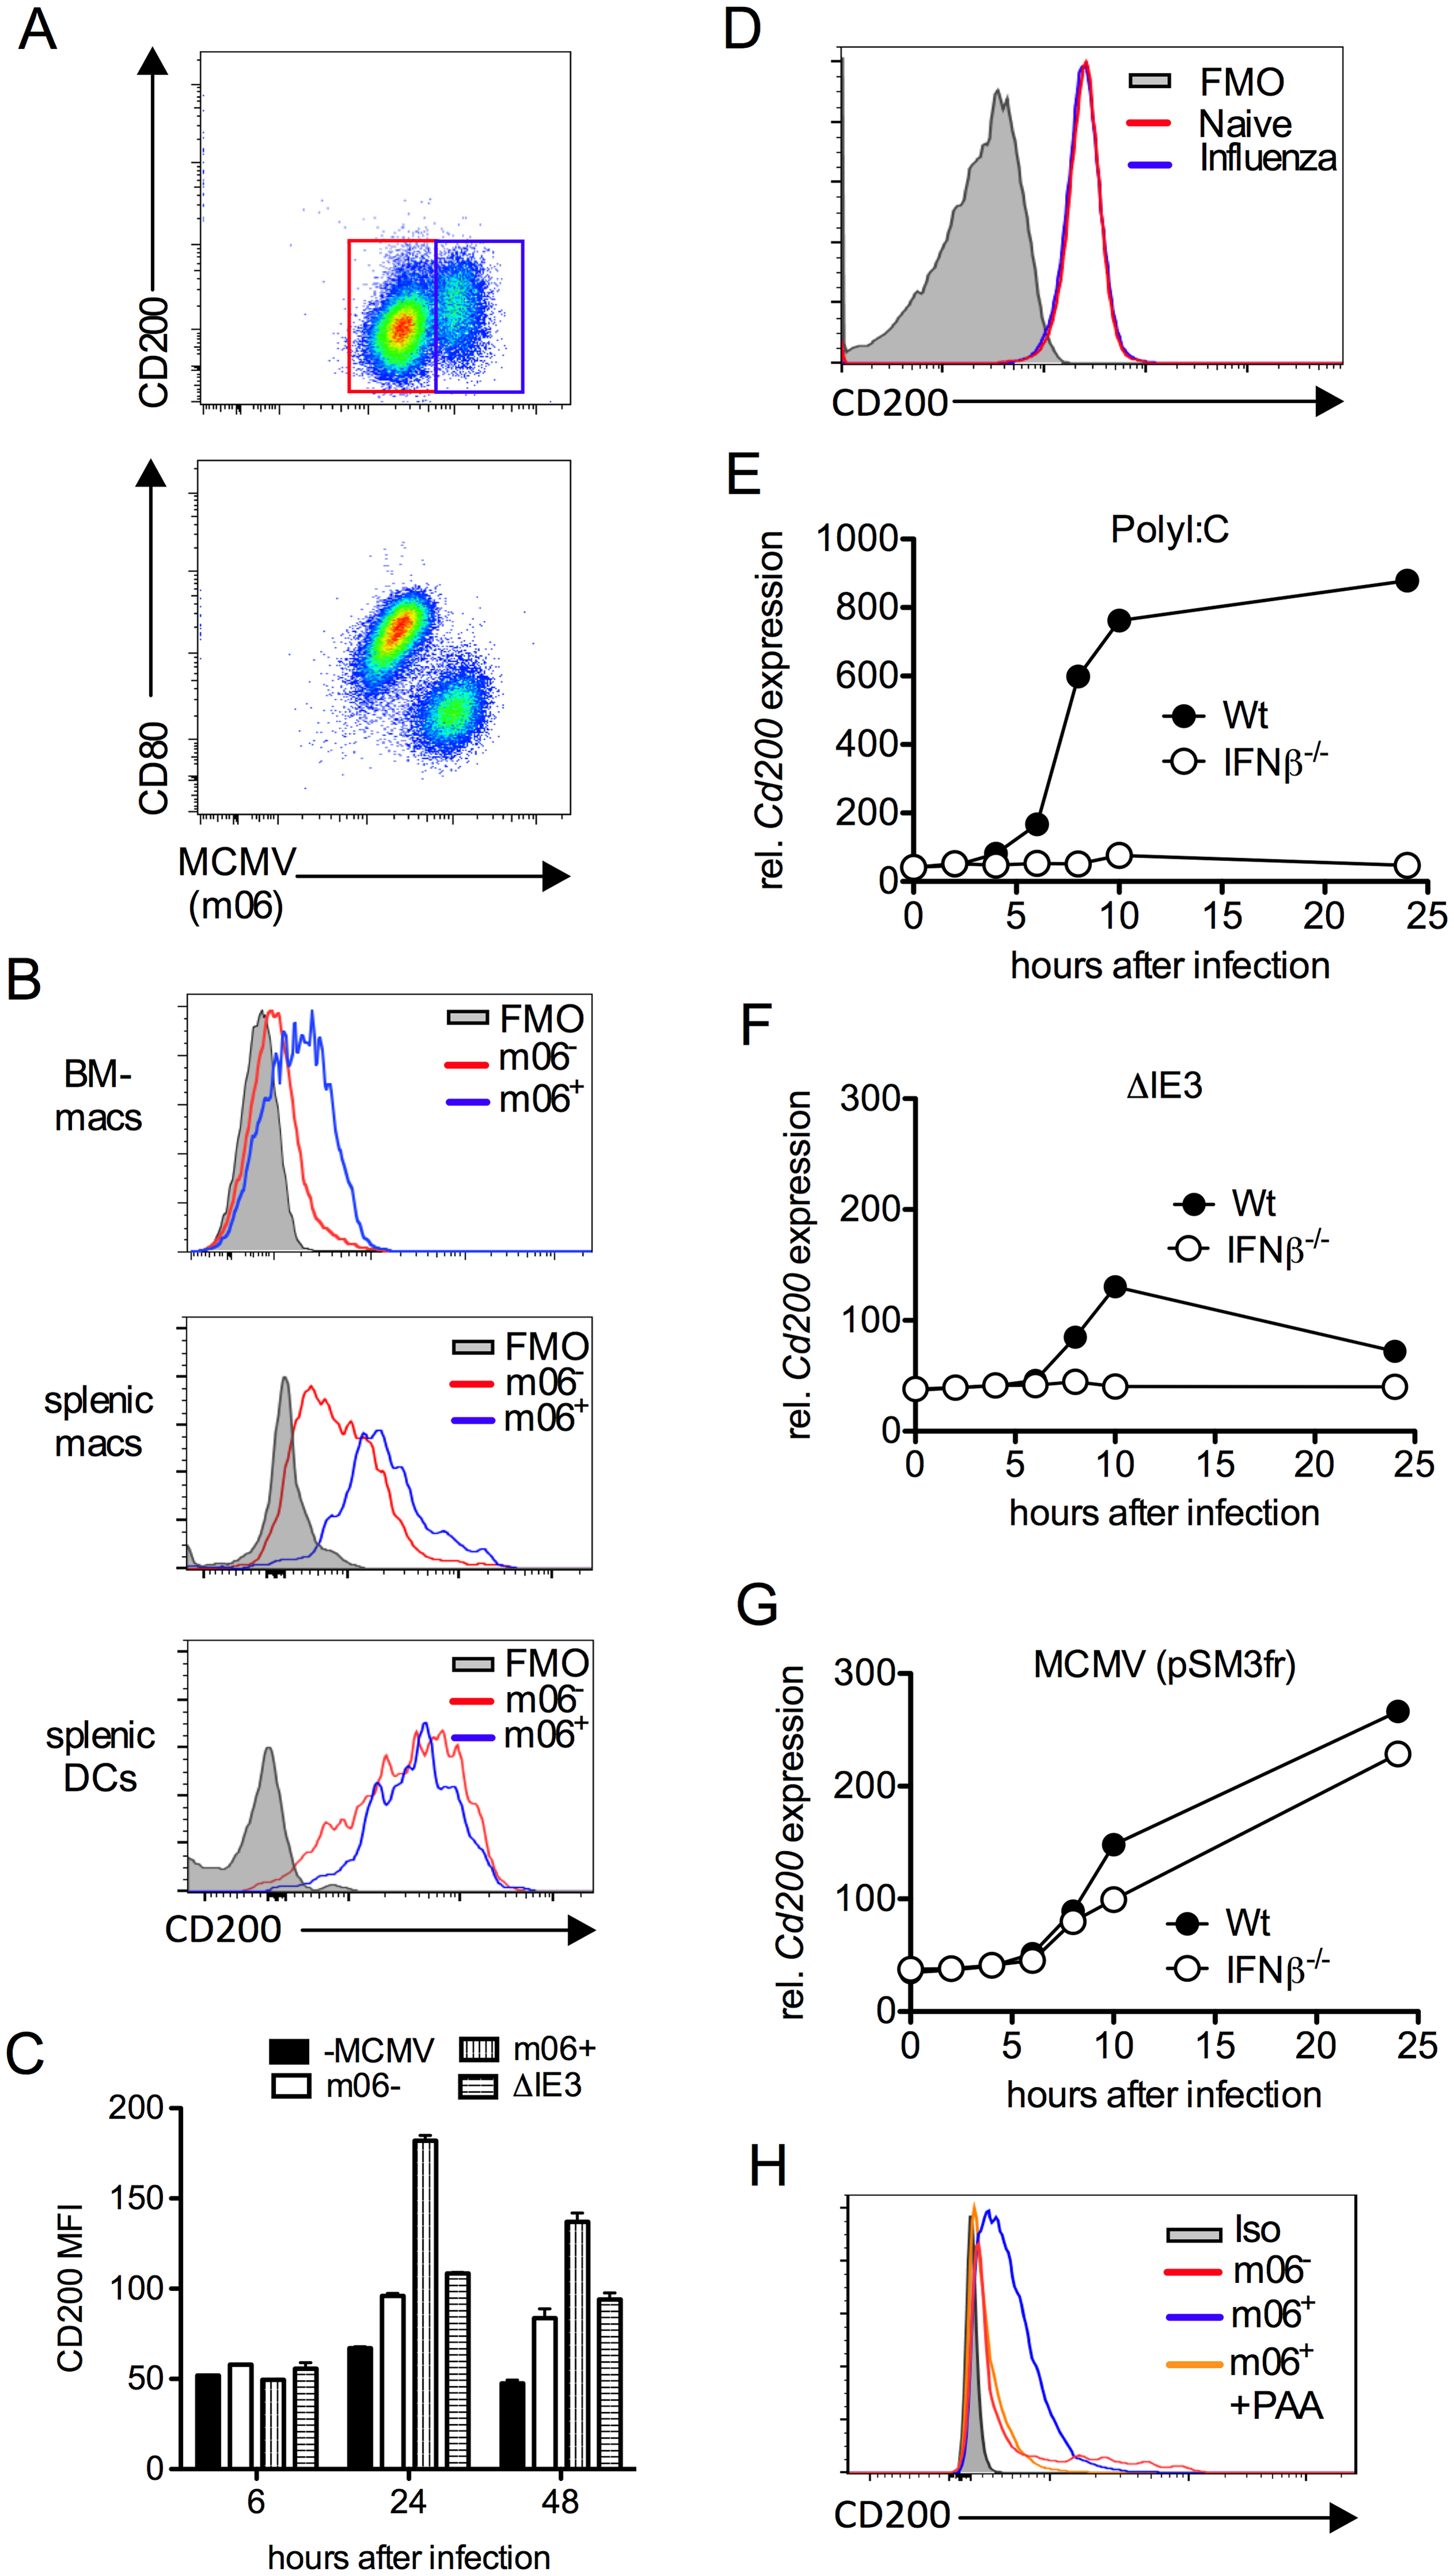 MCMV induces CD200 expression by macrophages.